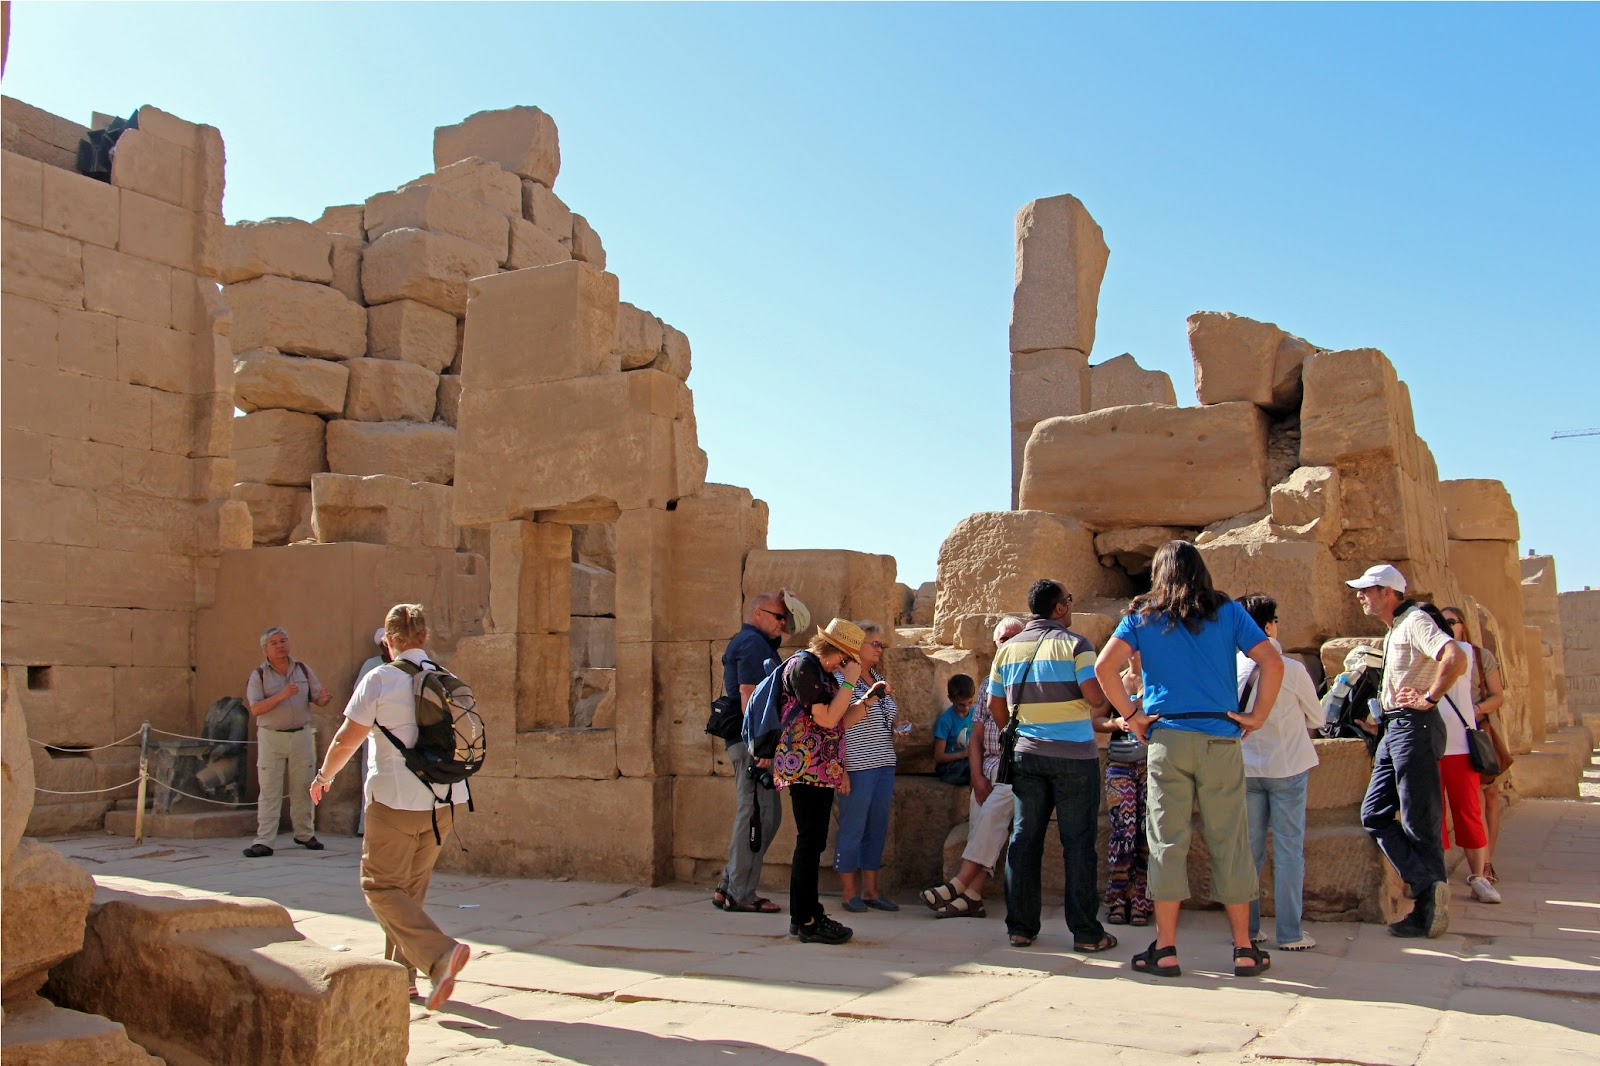 magnificent karnak temple (luxor's east bank)